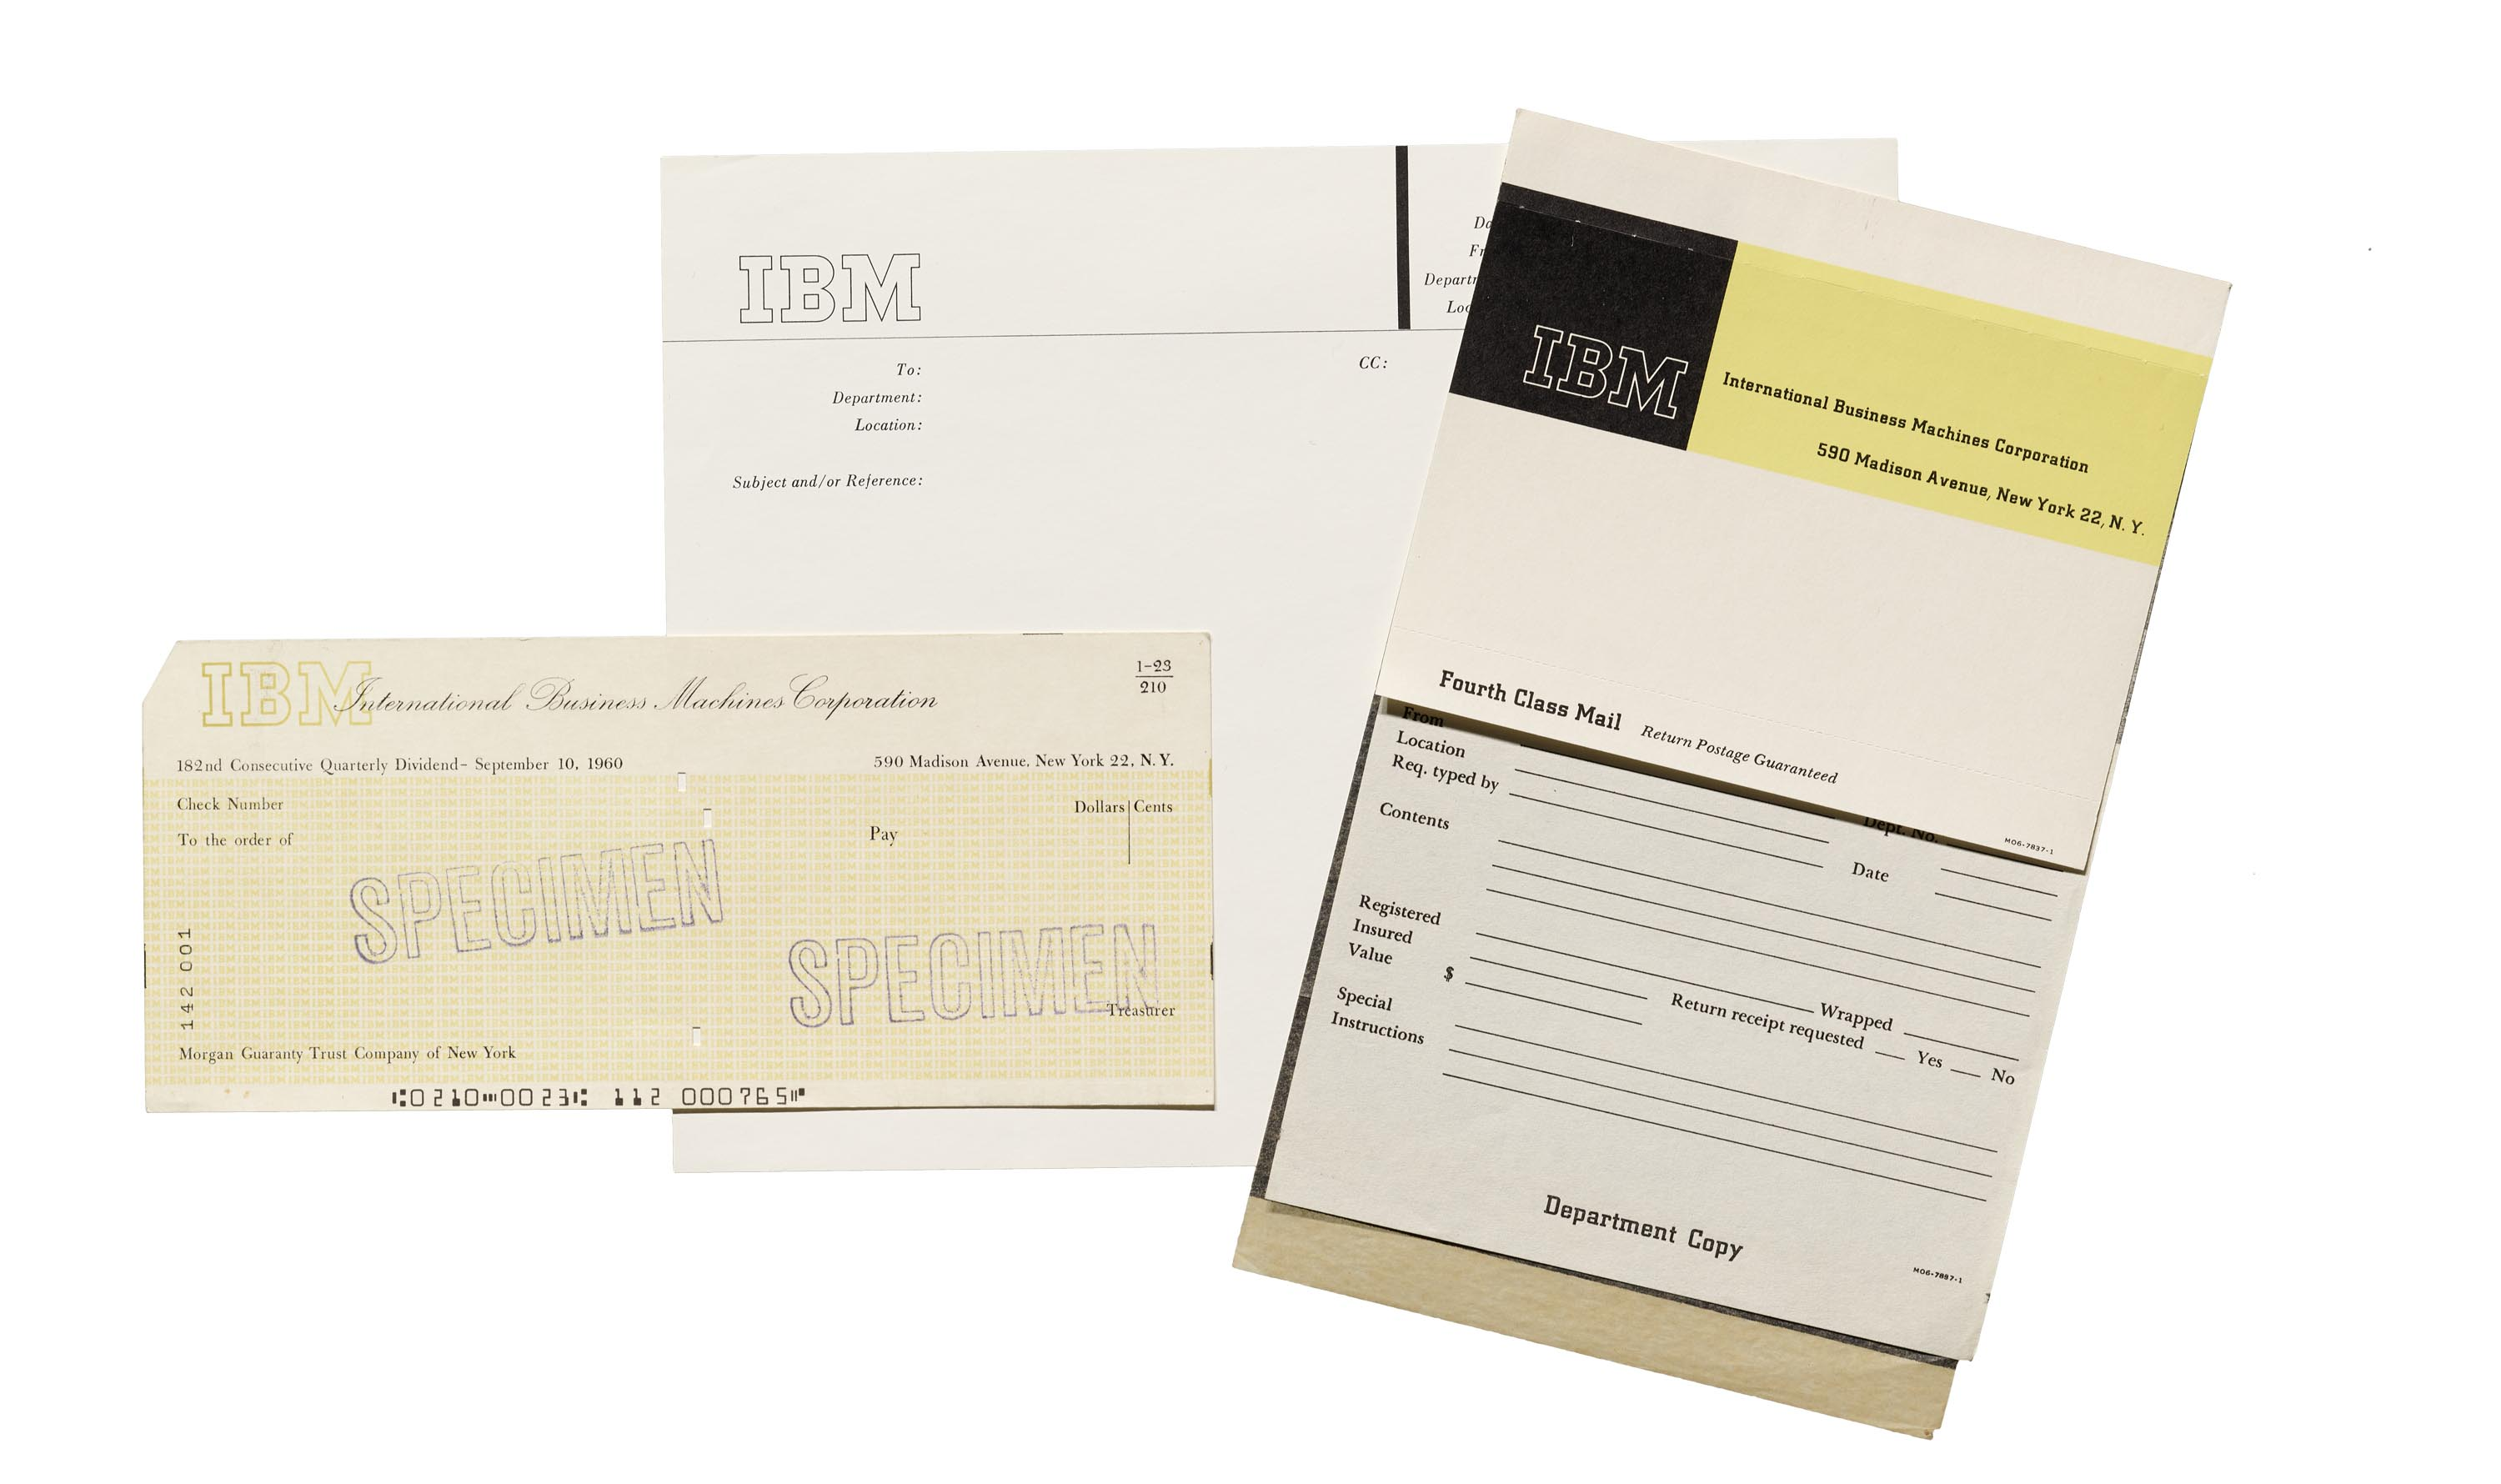 IBM check specimen, mailing label, and memo cover sheet, 1960.